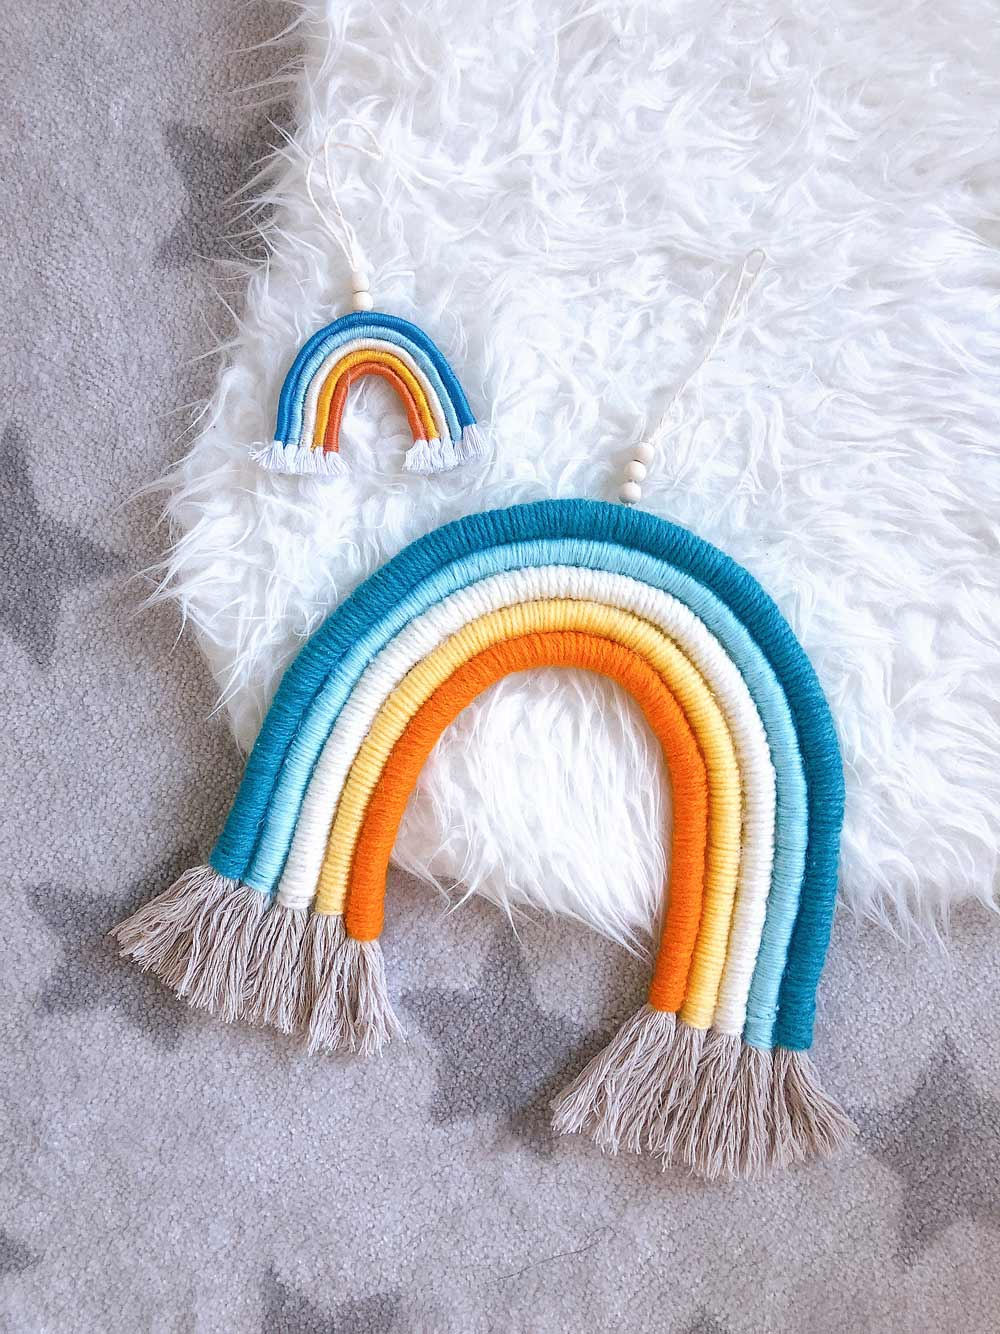 DIY Rainbow Wall Hanging Tutorial (with matching mini charm)